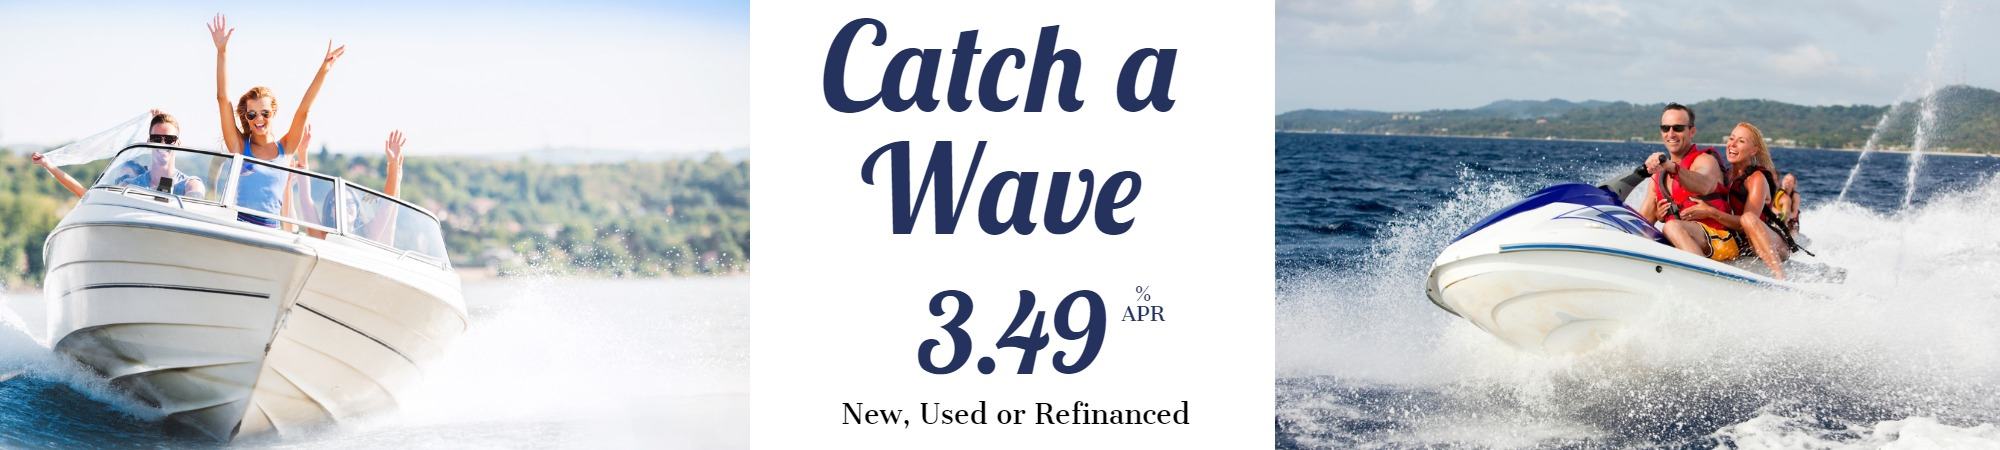 Catch a wave Boat Loan